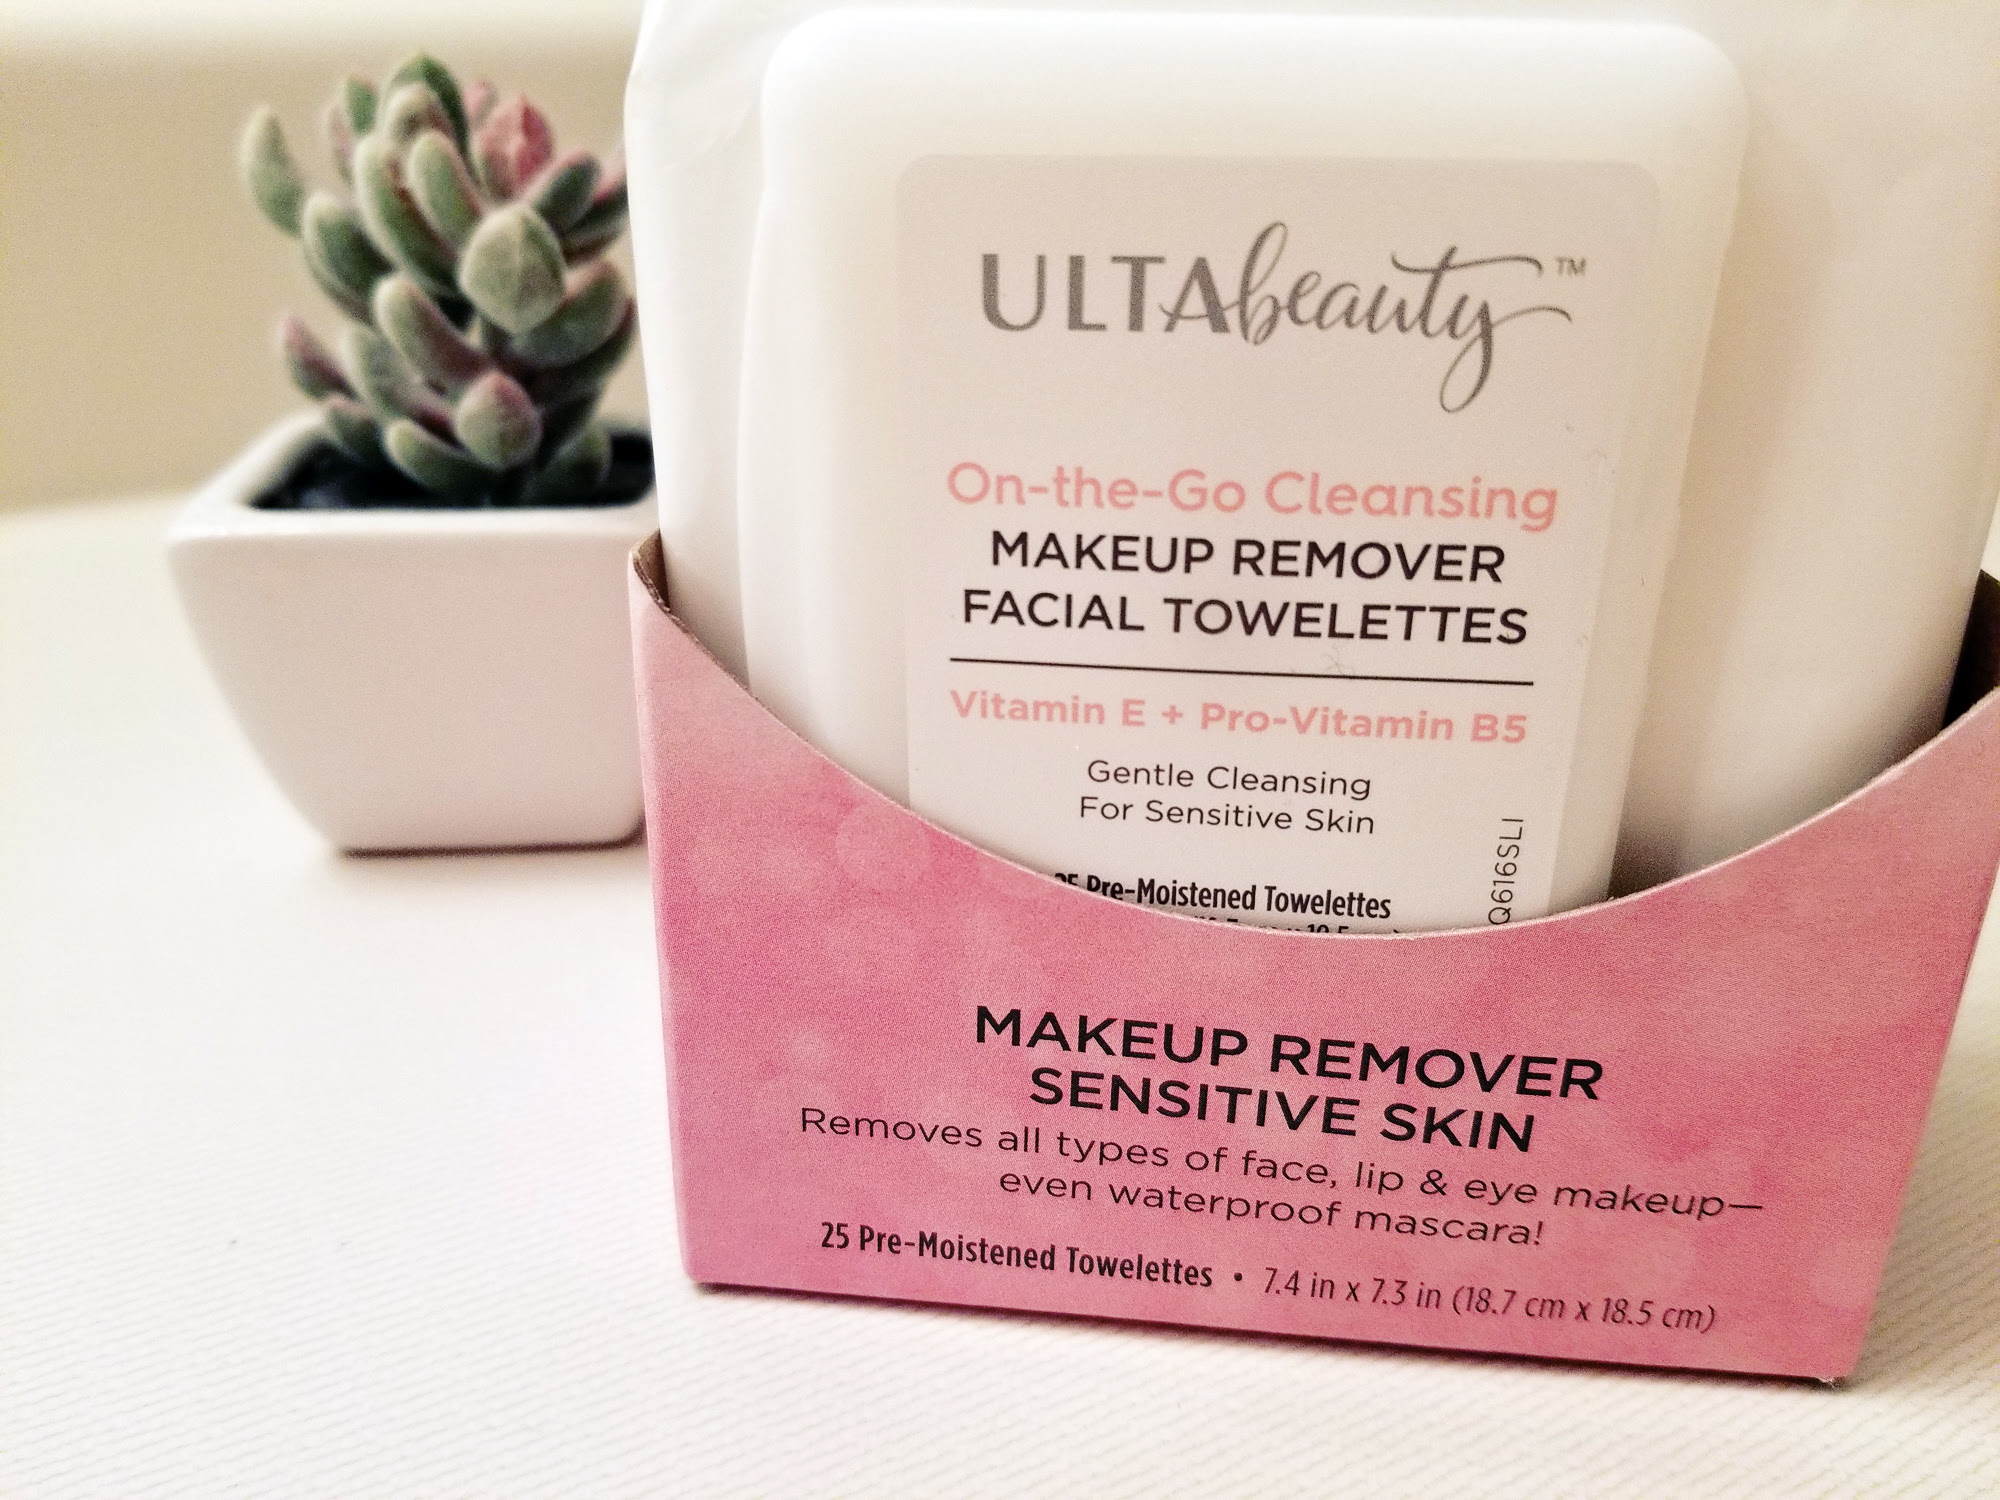 ULTA Review: Sensitive Skin Facial Cleansing Towelettes | Style Through Her Eyes